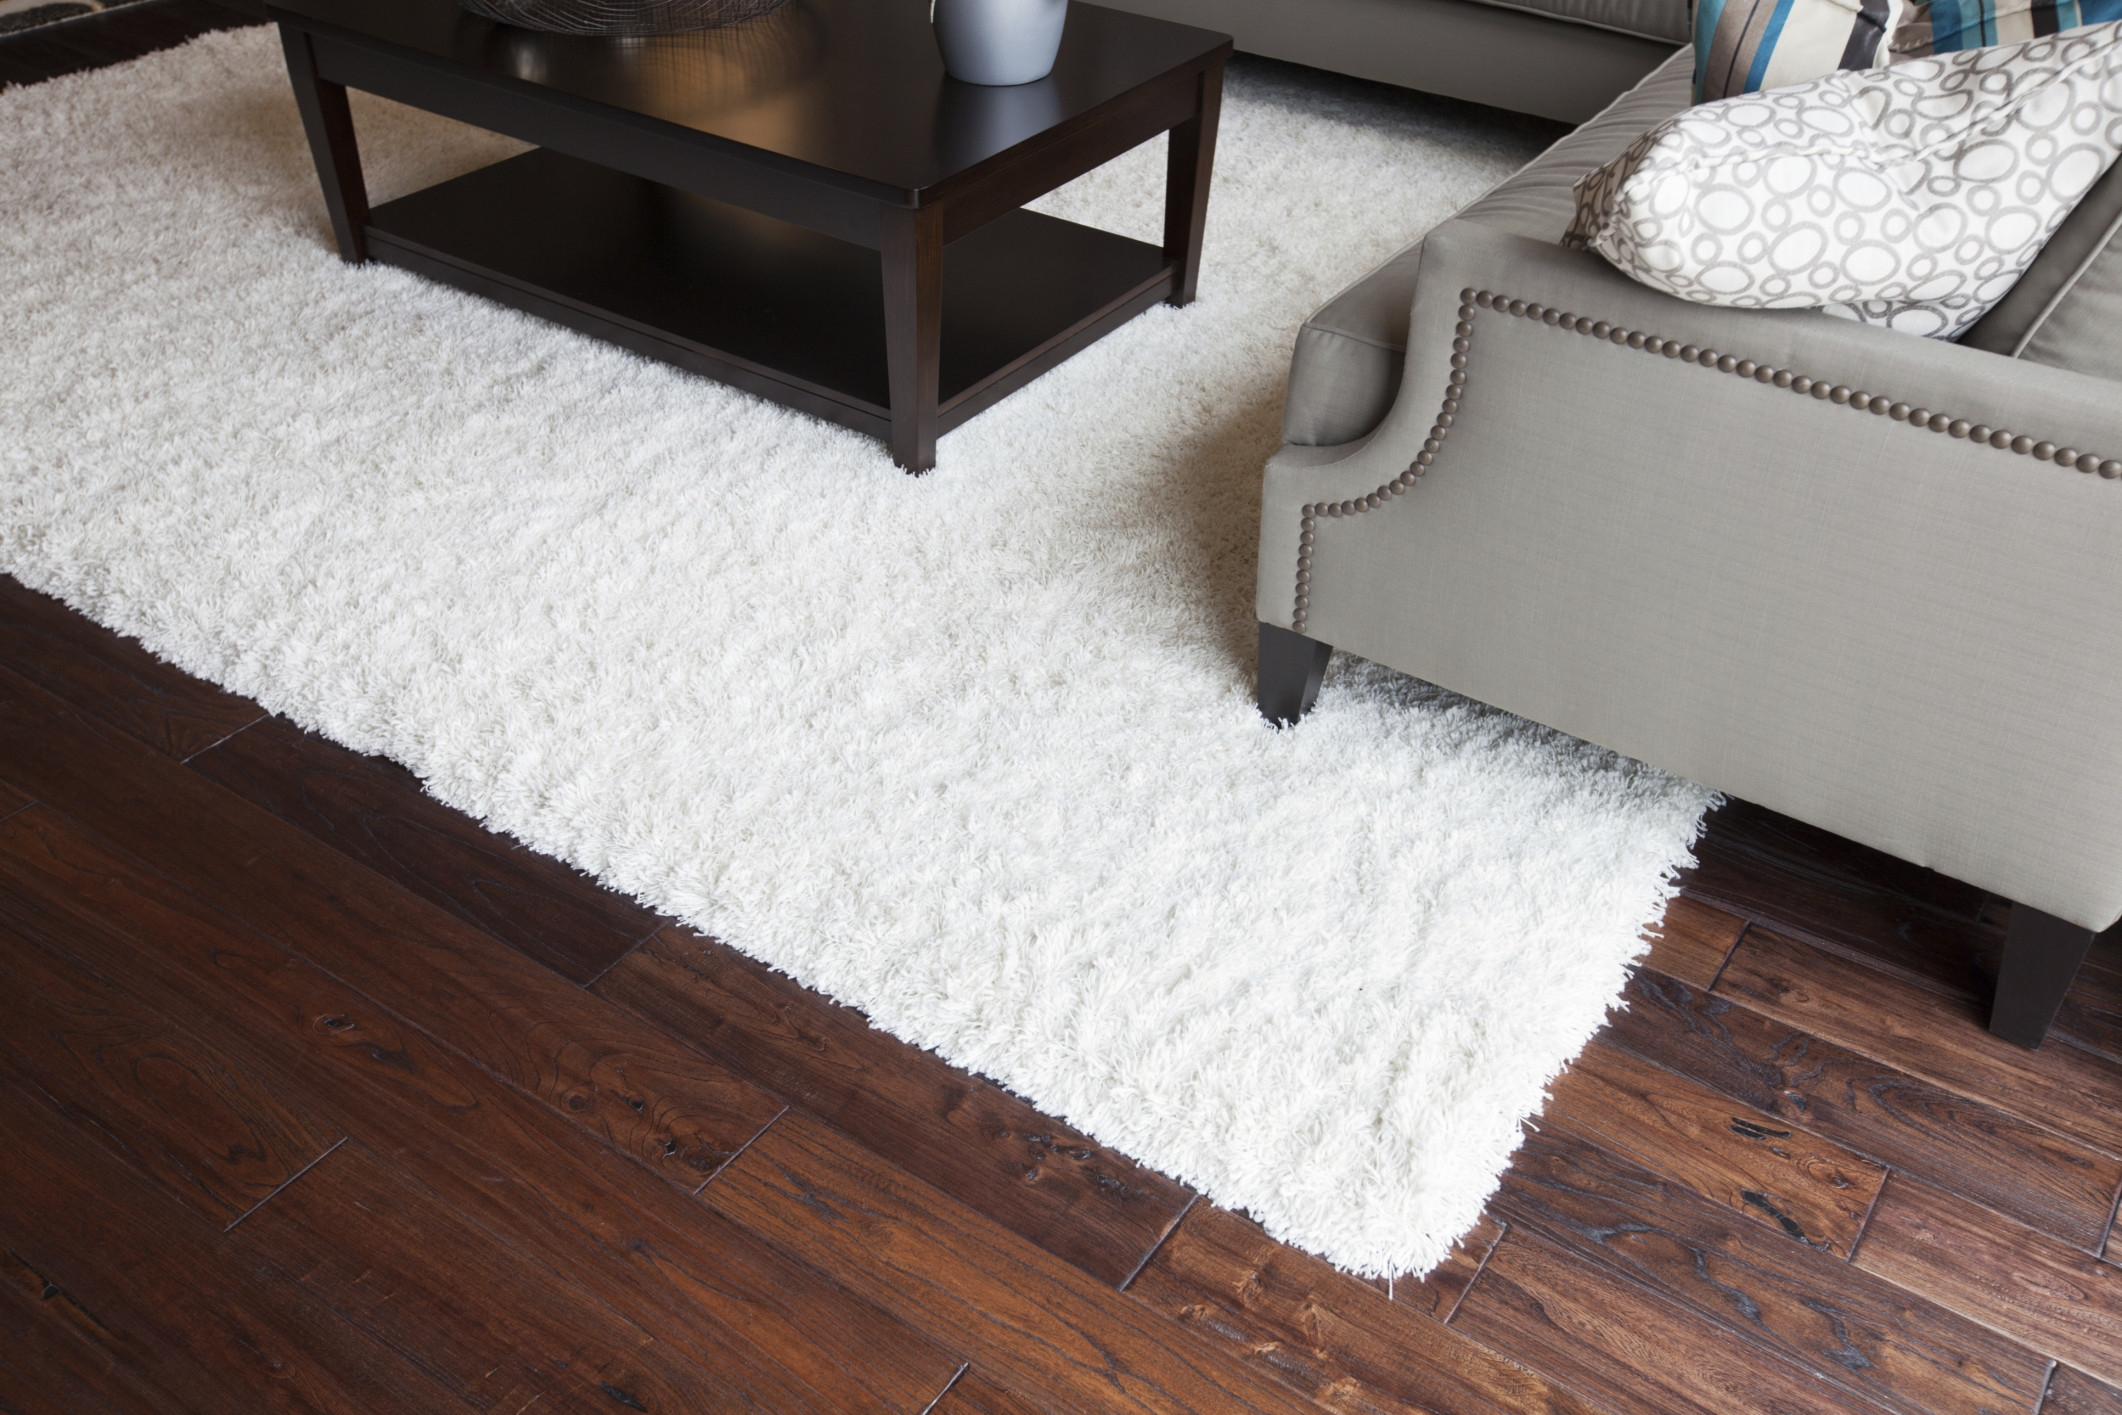 Pads To Keep Furniture From Sliding On Wood Floors